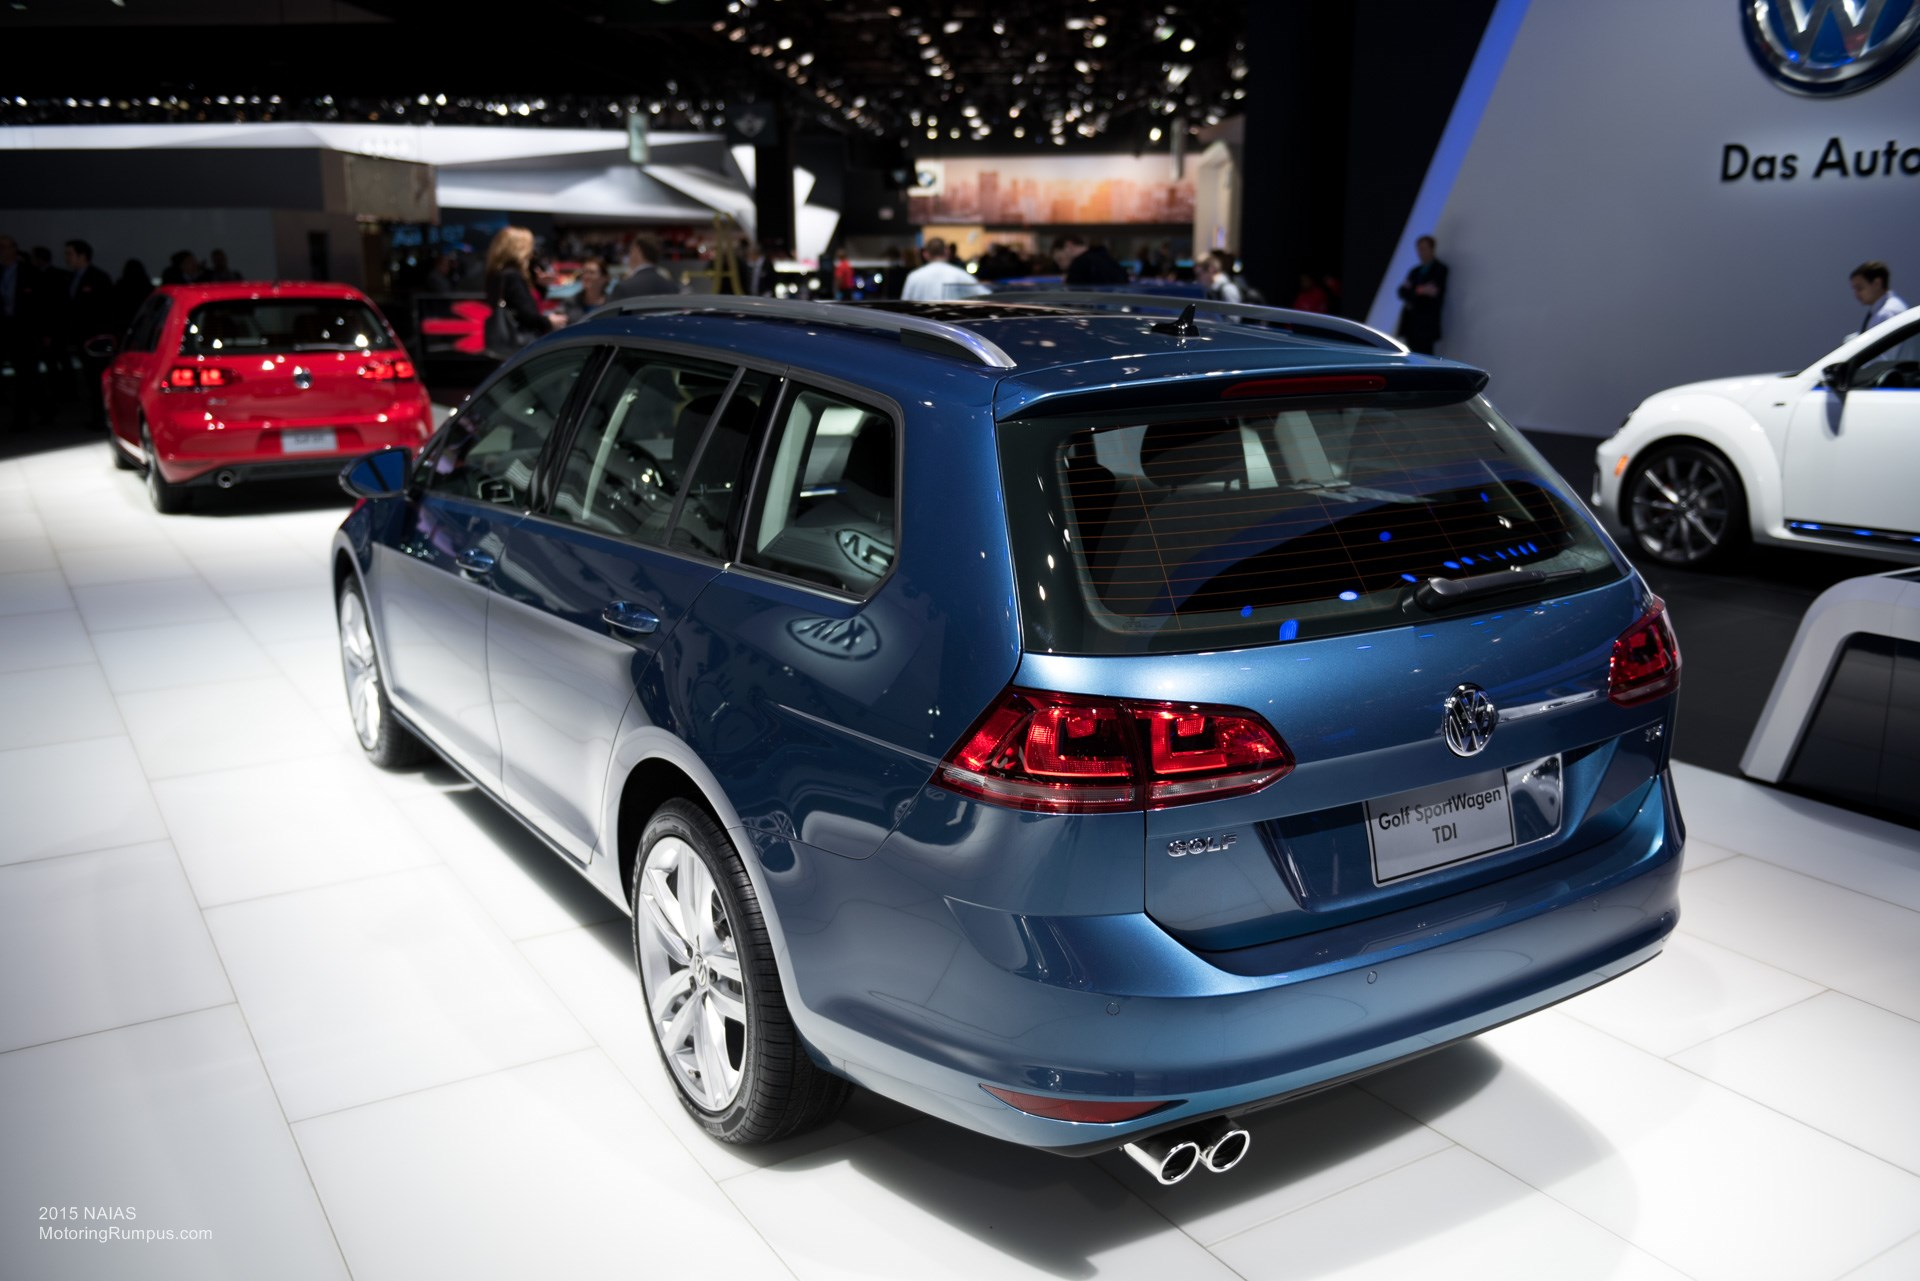 2015 naias volkswagen golf sportwagen tdi motoring rumpus. Black Bedroom Furniture Sets. Home Design Ideas